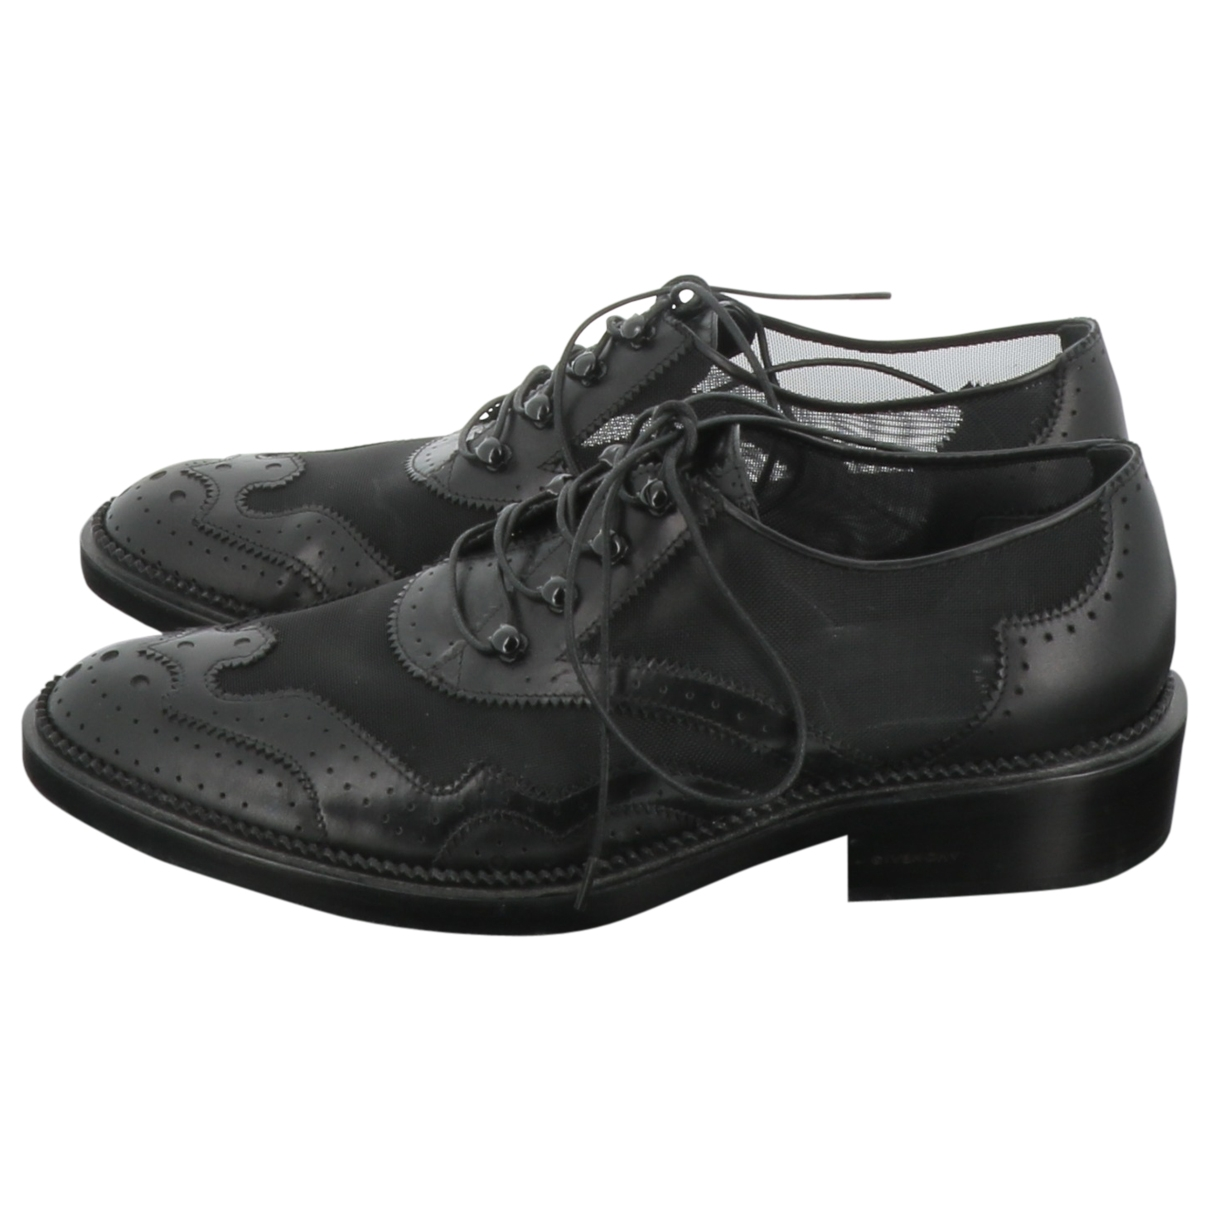 Givenchy \N Black Leather Lace ups for Women 37 EU